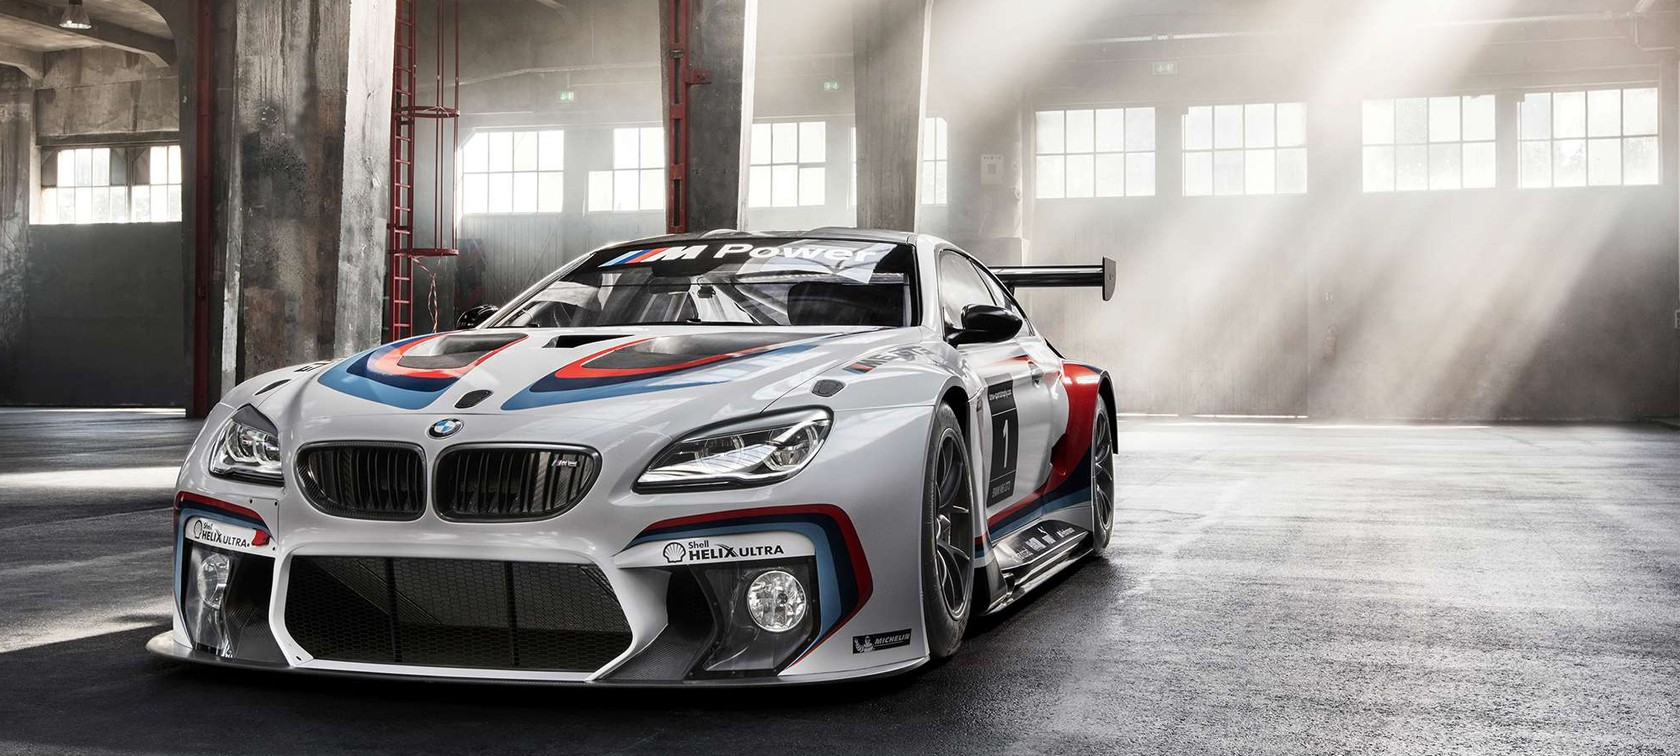 10 Things You Didn't Know About BMW | The M6 GTLM